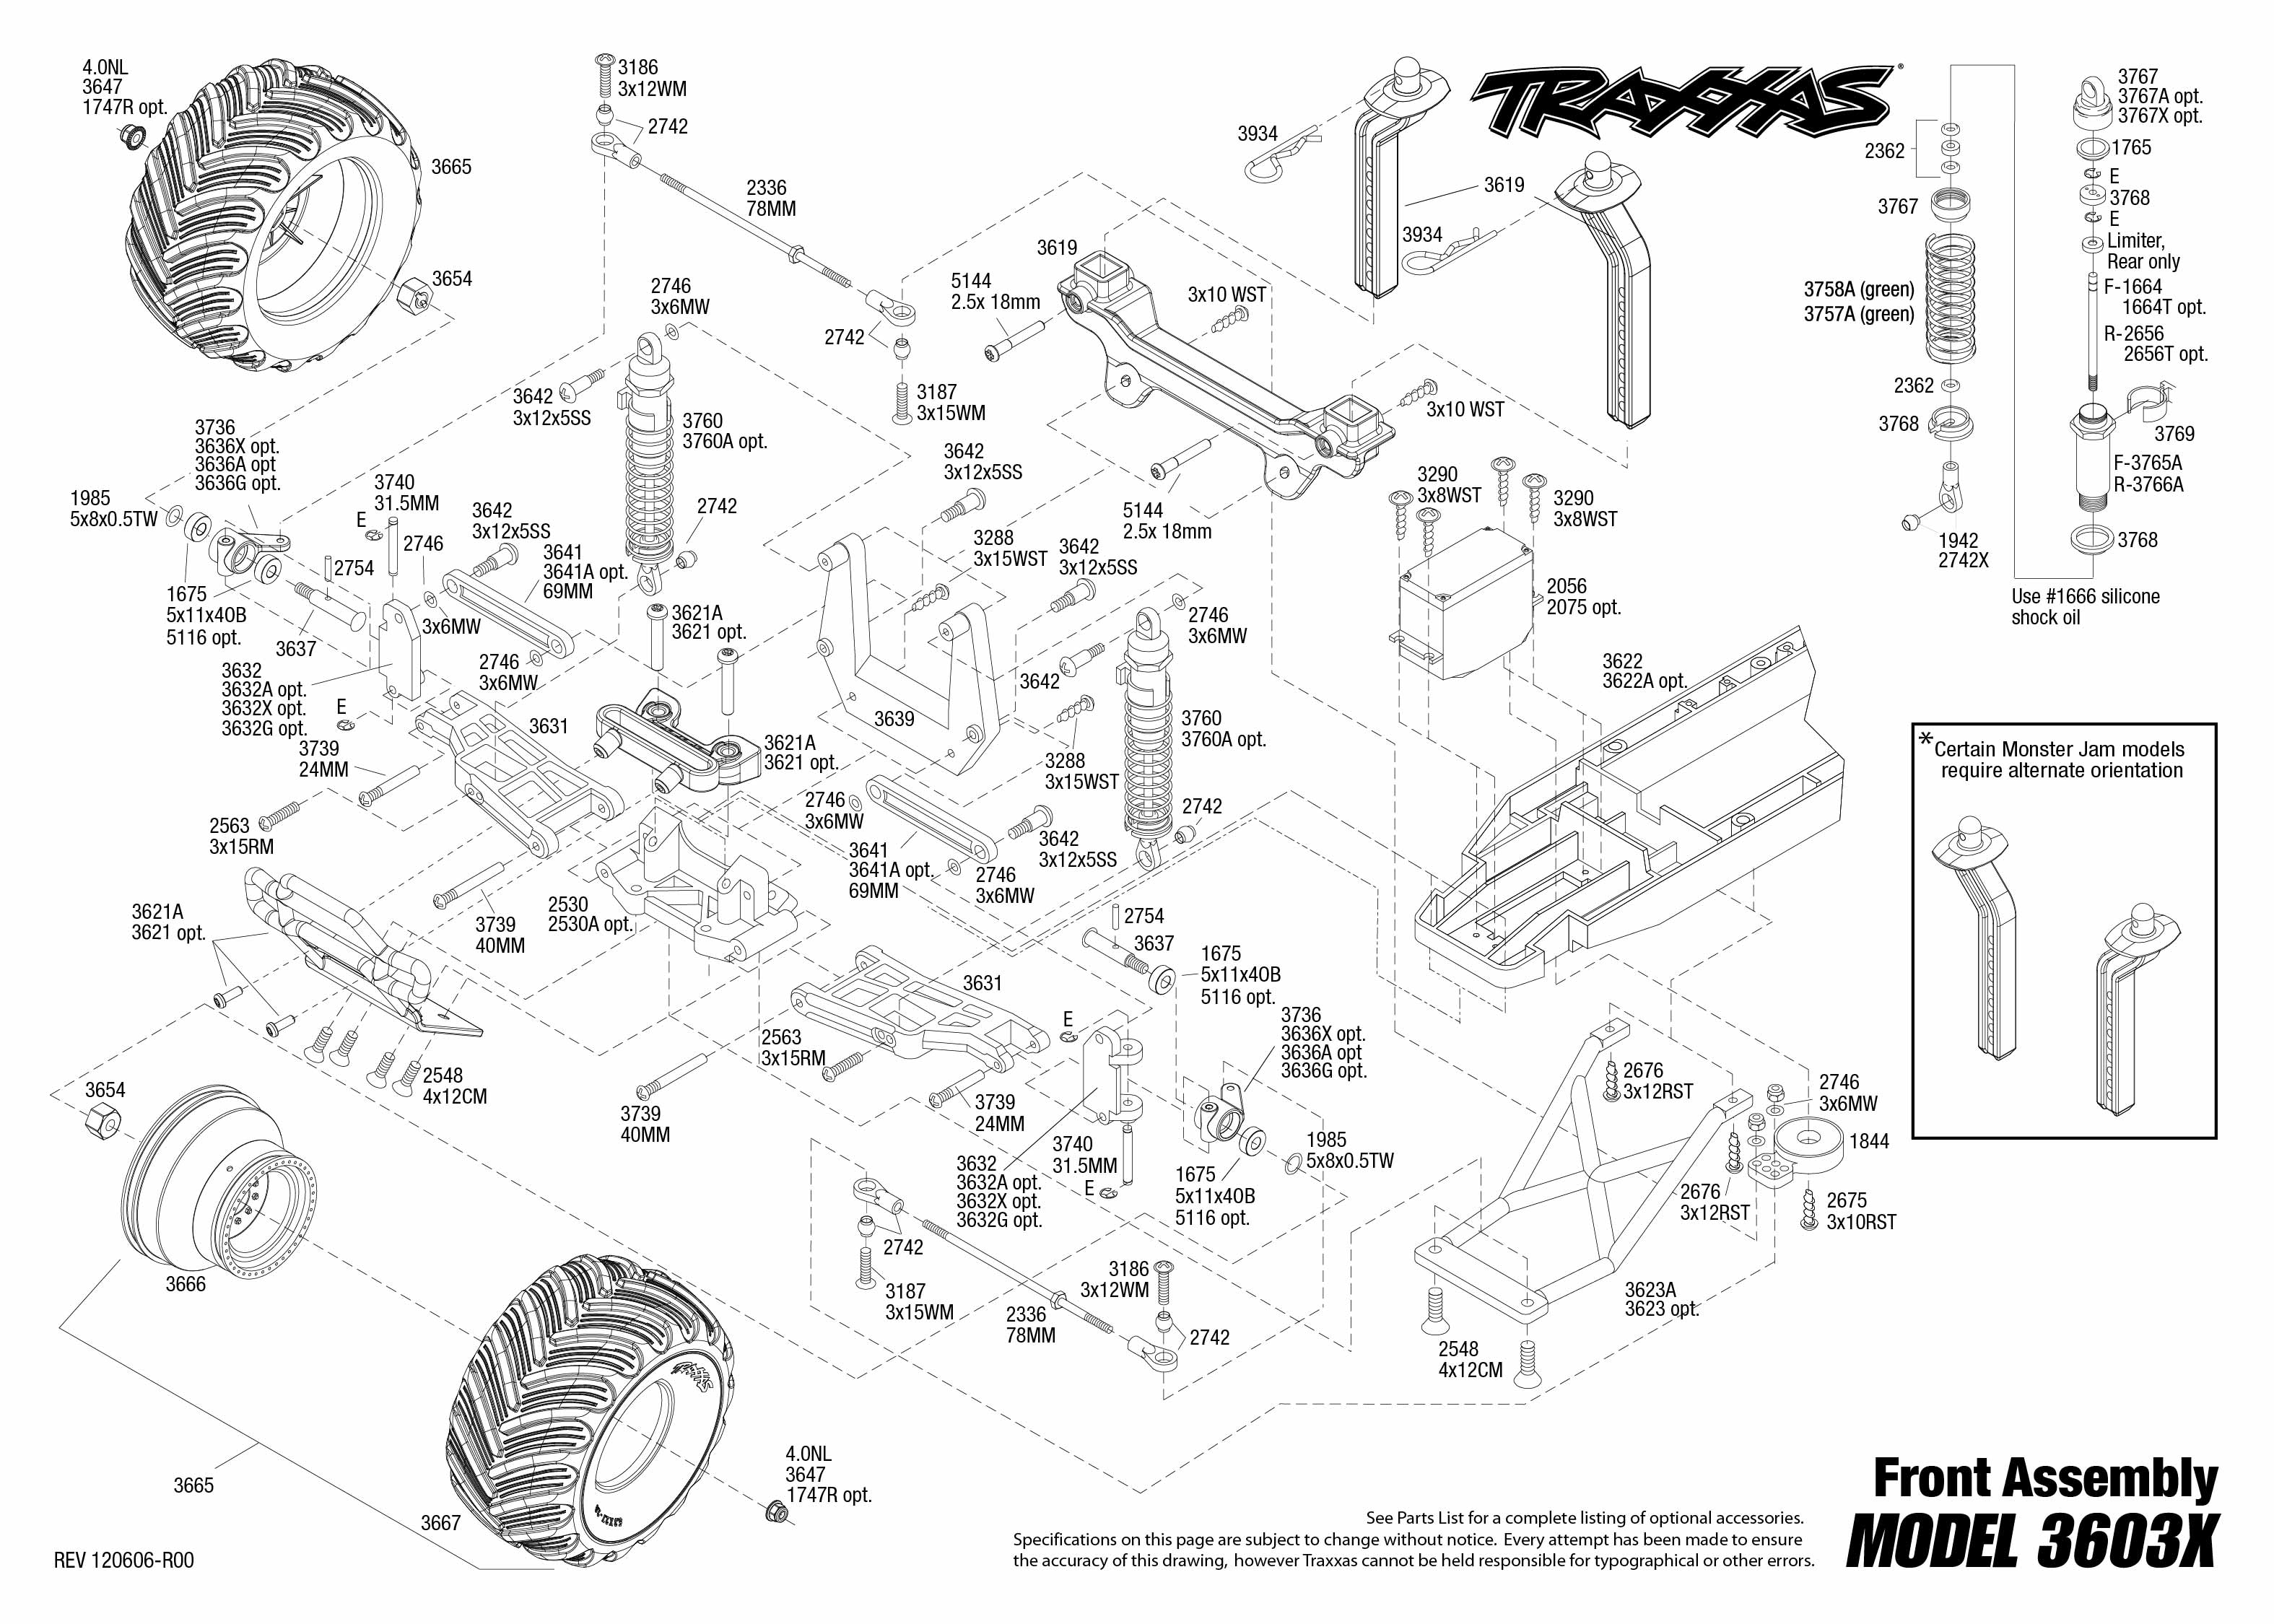 Captivating traxxas grave digger parts diagram contemporary best exploded view traxxas grave digger front part astra captivating traxxas grave digger parts diagram pooptronica